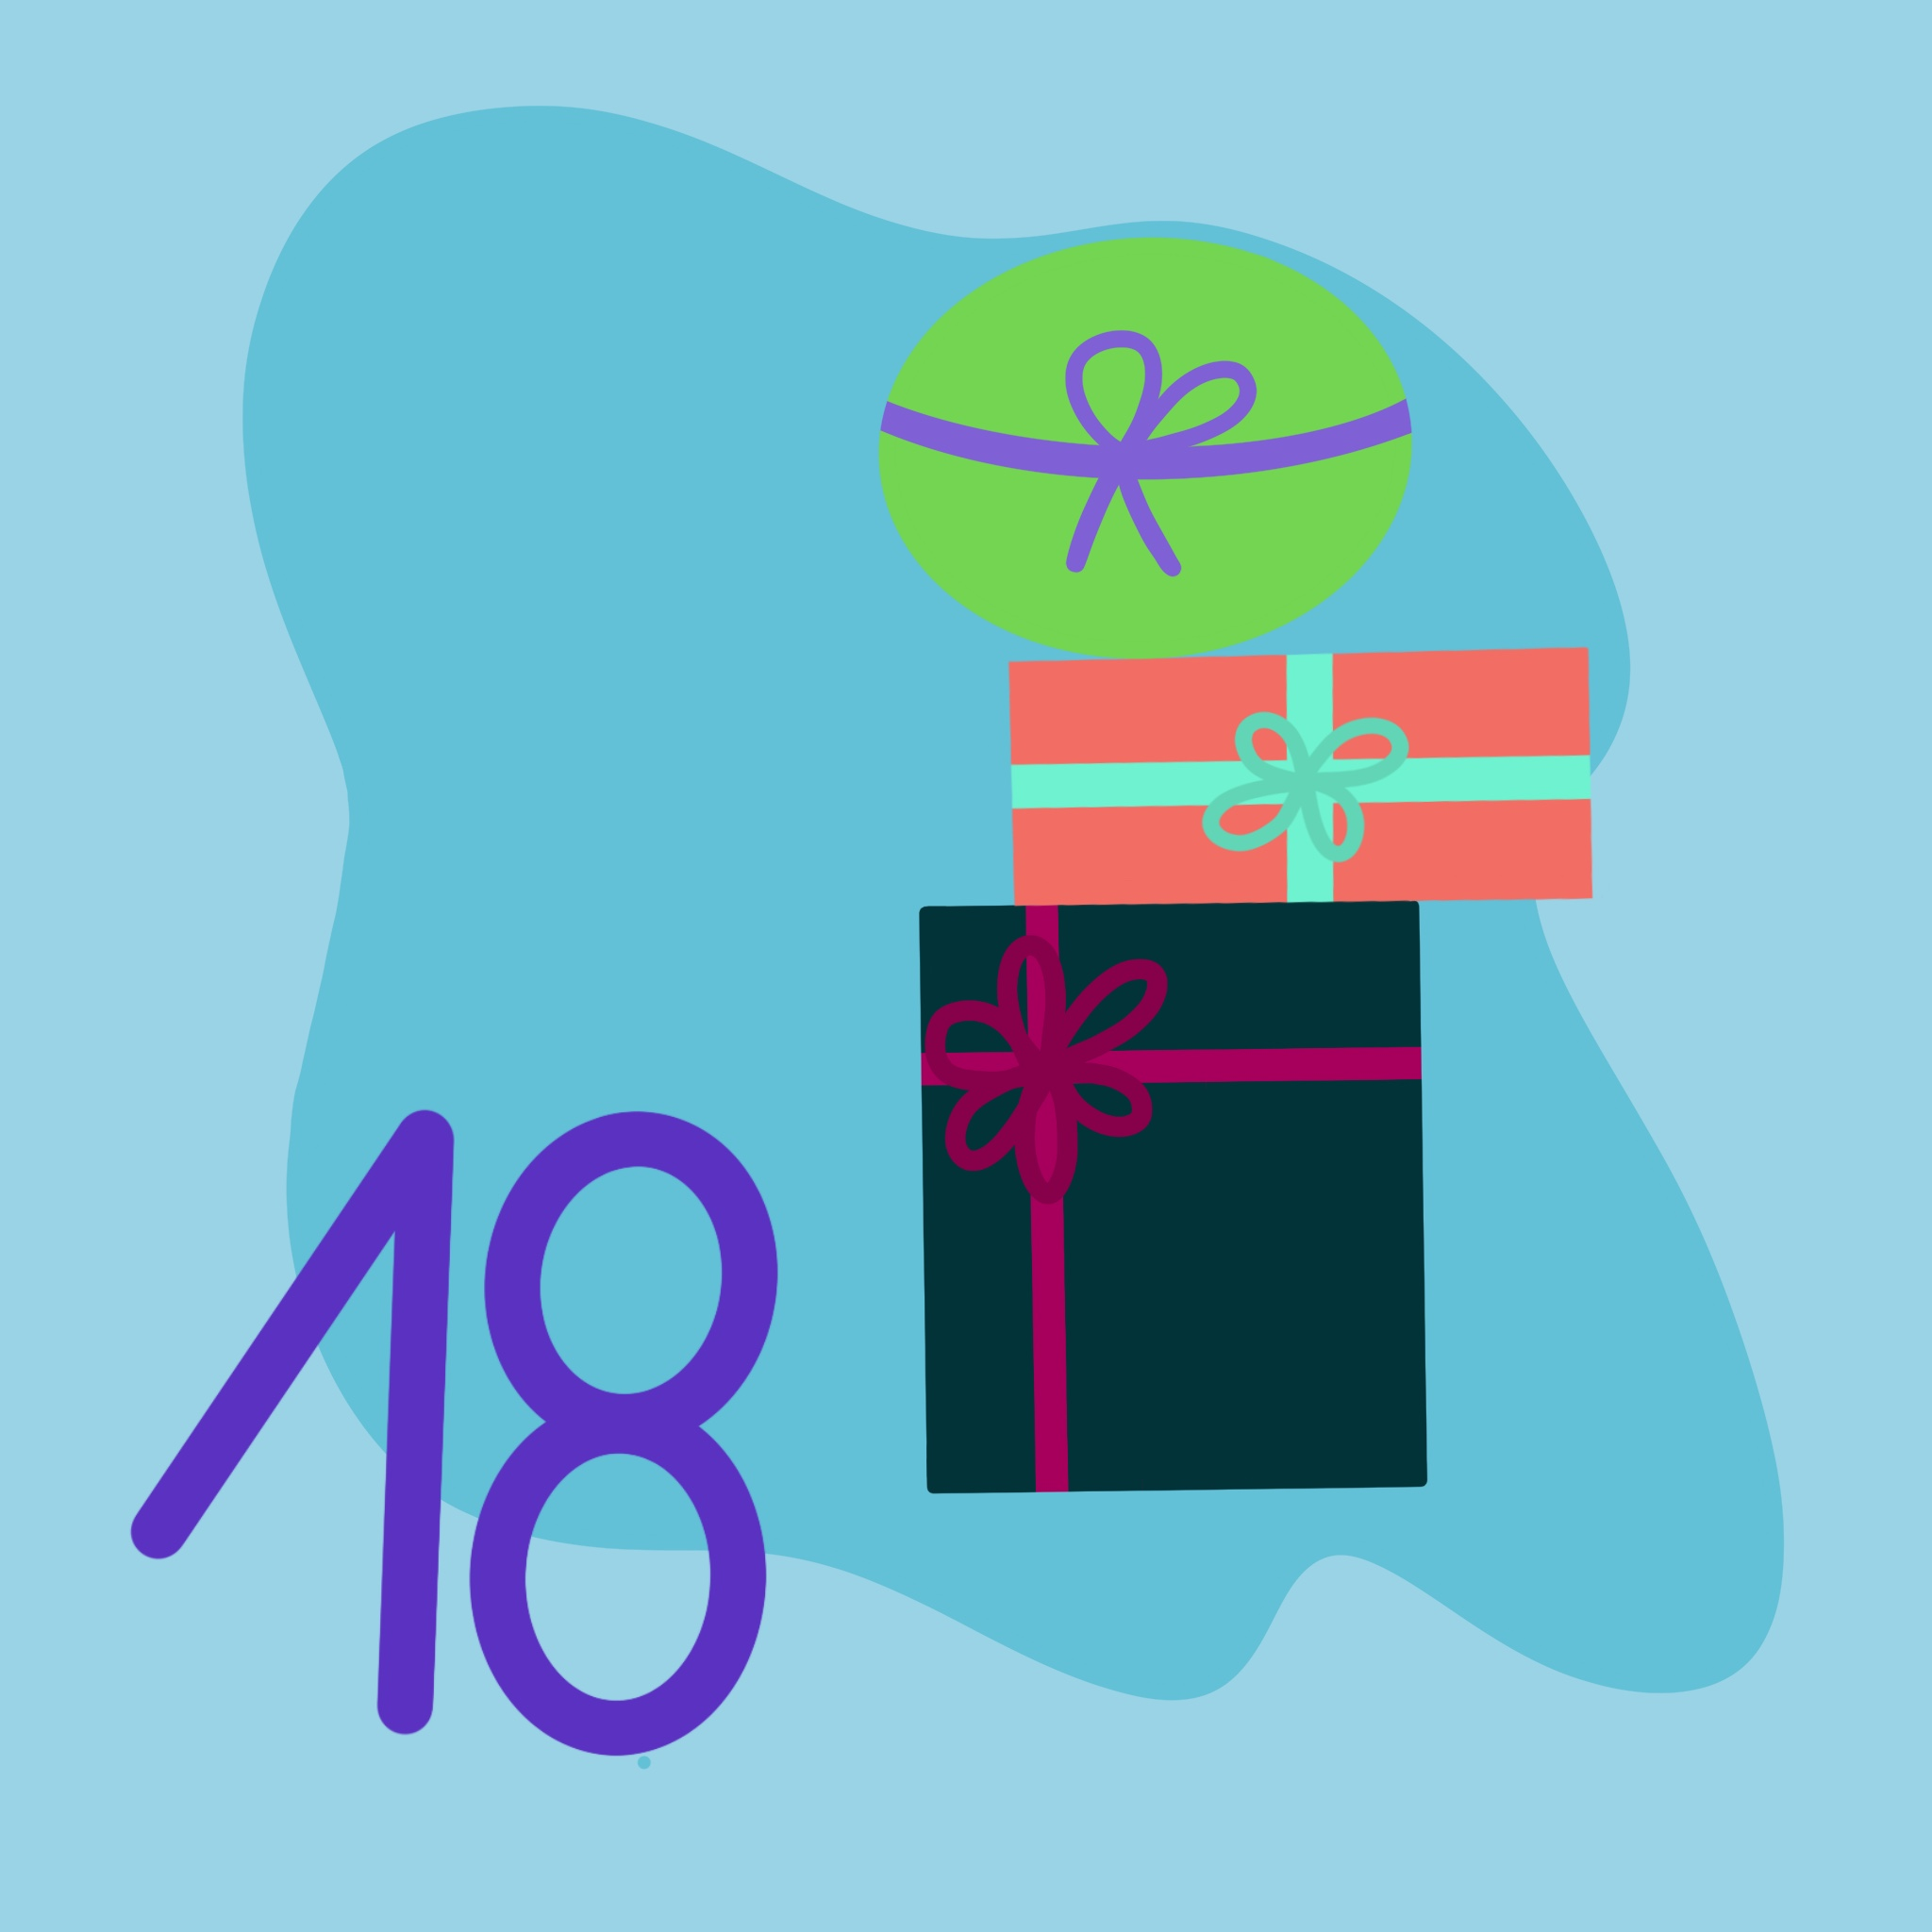 You are currently viewing Adventskalender 18.12.2020